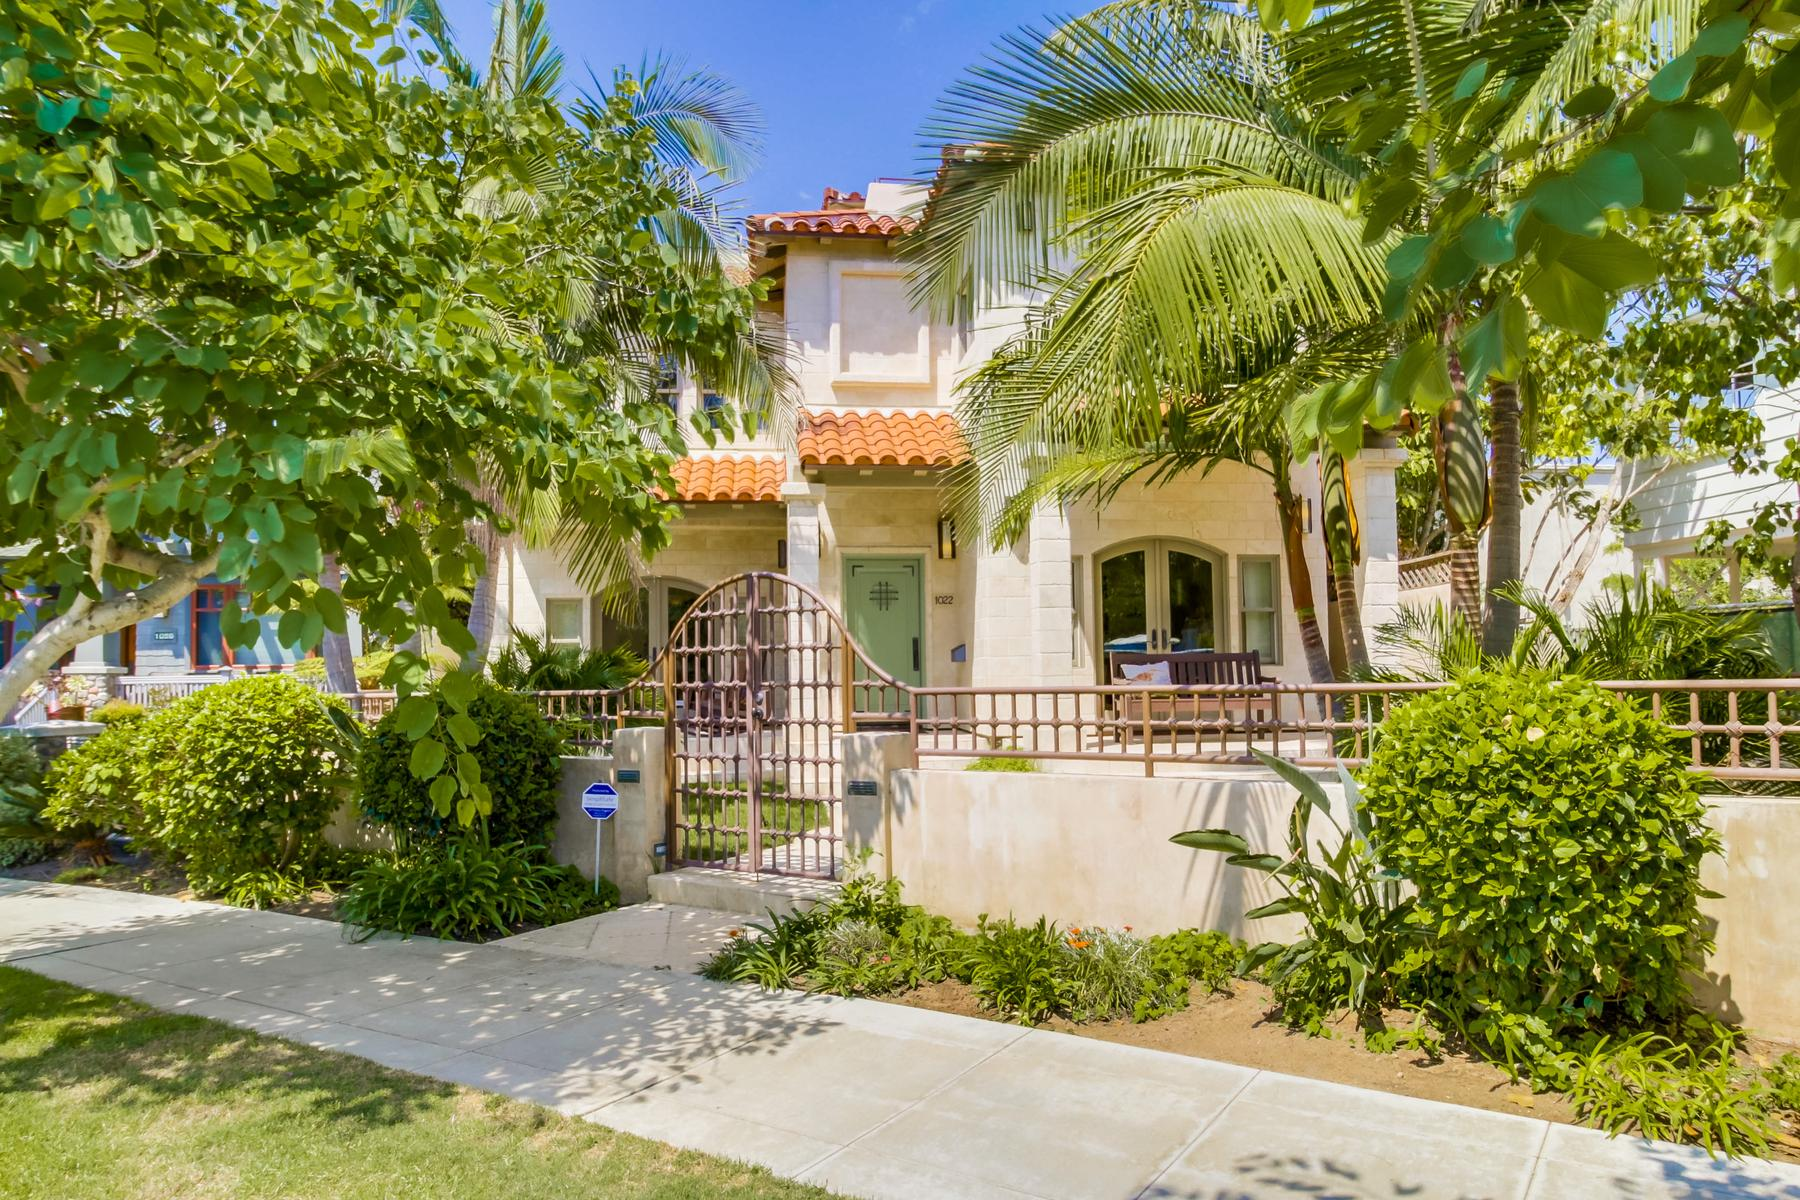 واحد منزل الأسرة للـ Sale في 1022 G Avenue Coronado, California, 92118 United States